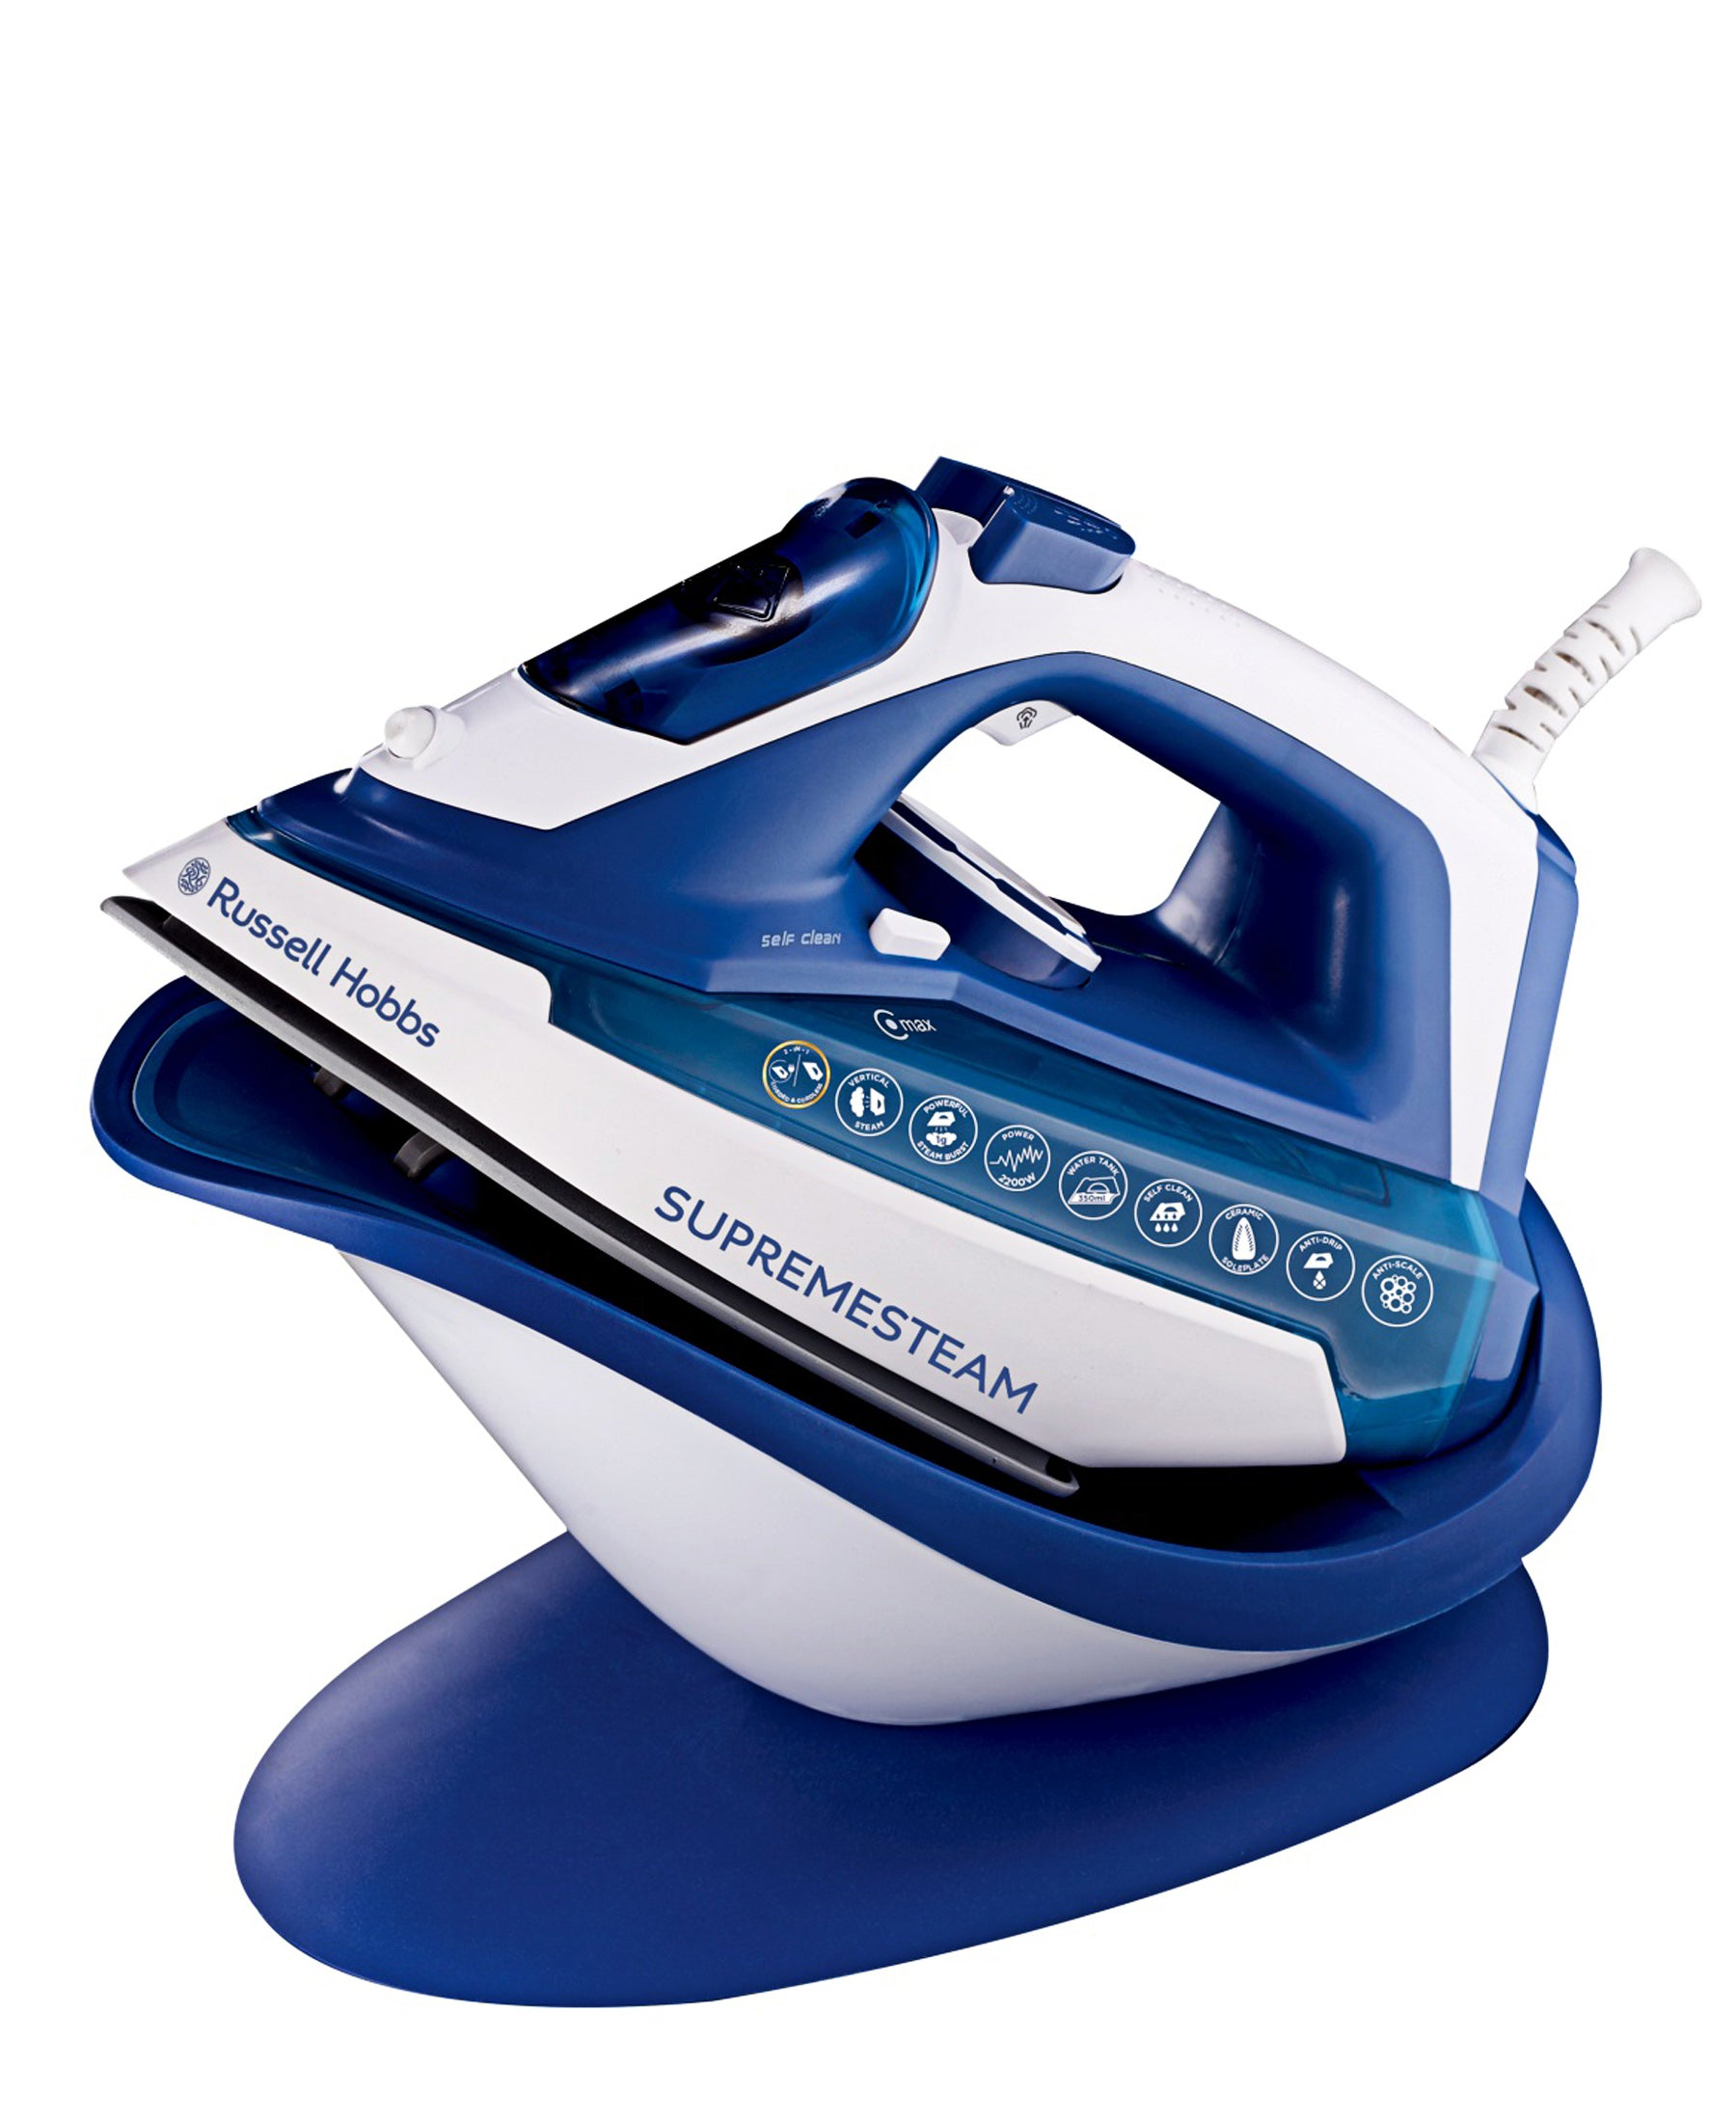 Russell Hobbs Supreme Steam Iron - Blue